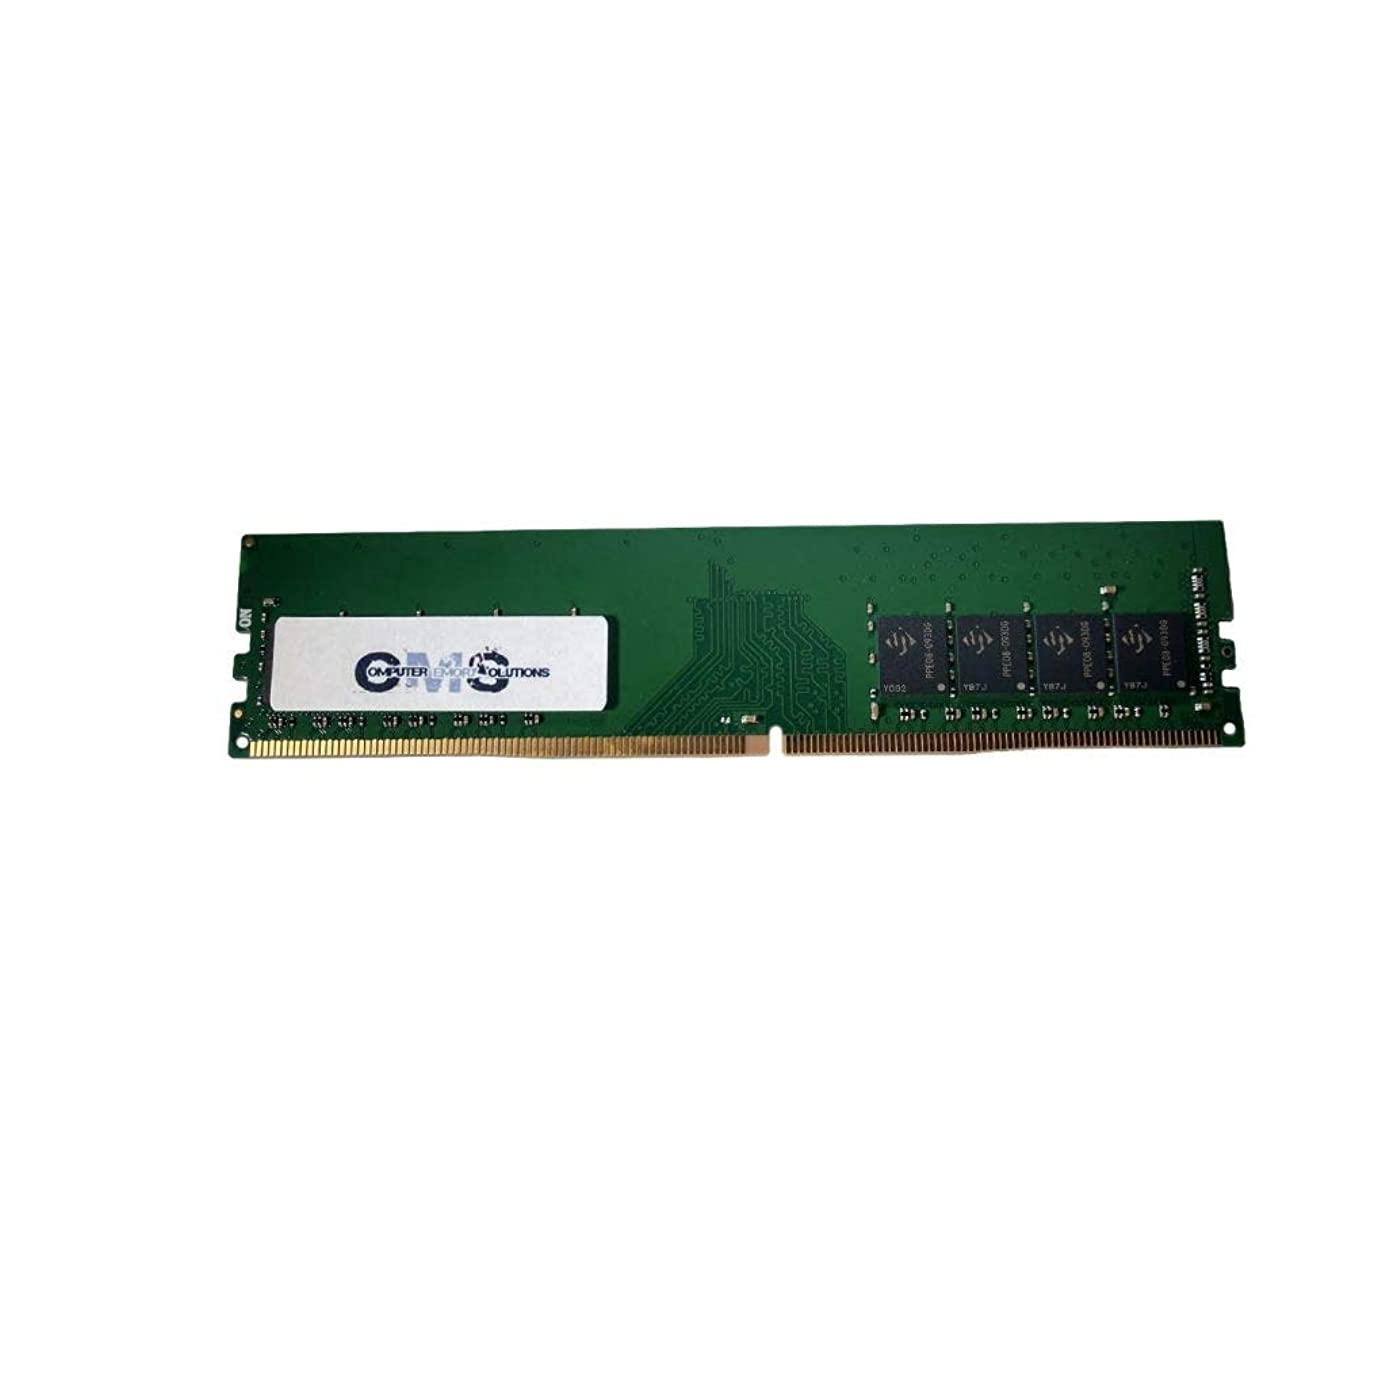 4GB (1X4GB) Memory RAM Compatible with Gigabyte - GA-AX370-Gaming 5, GA-AX370-Gaming K3, GA-AX370-Gaming K5, GA-AX370-Gaming K7, GA-AX370-Gaming, GA-AX370M-DS3H, GA-AX370M-Gaming 3 by CMS C116 tly4657230